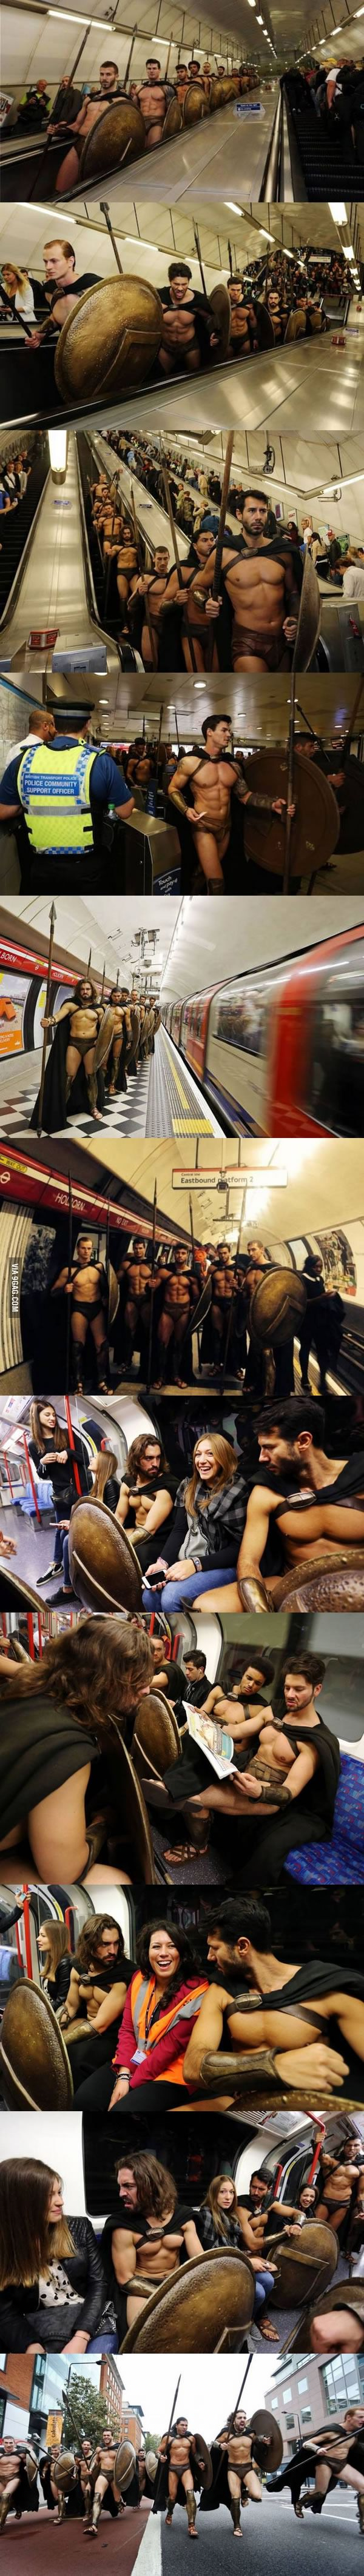 Best 300 Cosplay Ever, London Tube